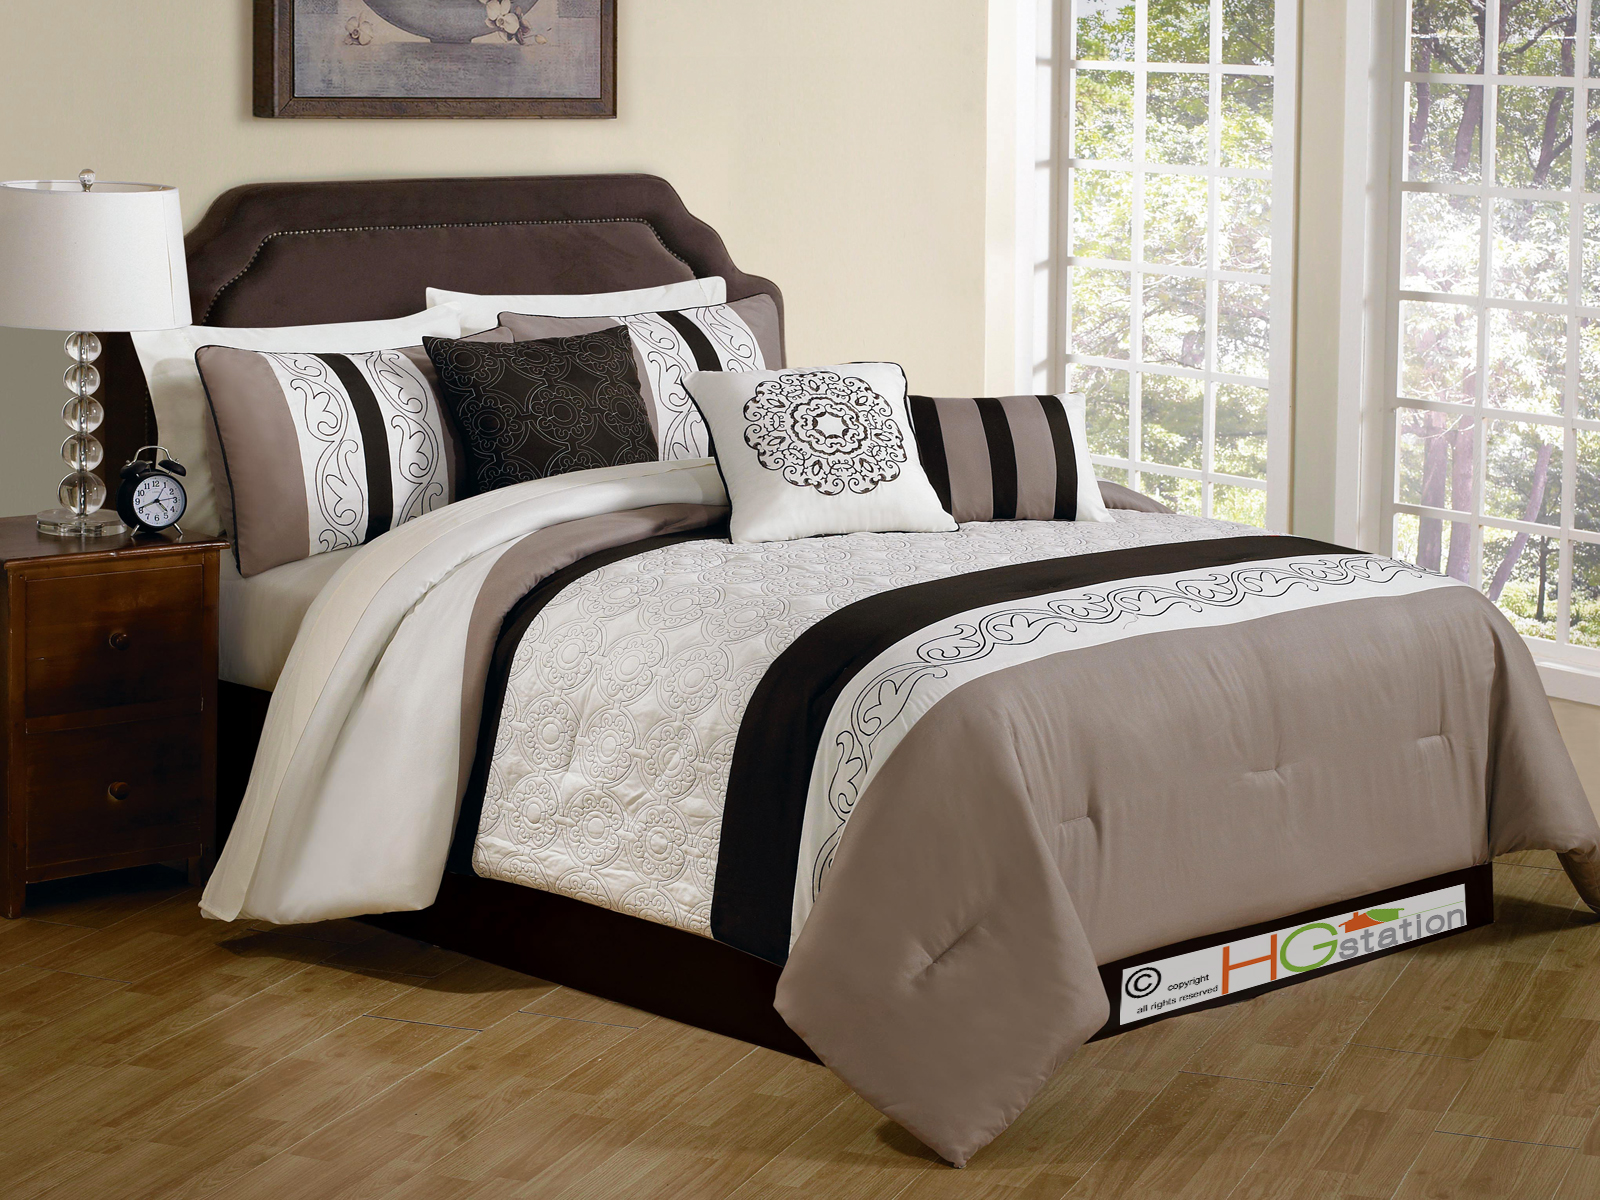 11pc comforter set quilted embroidery royal floral damask